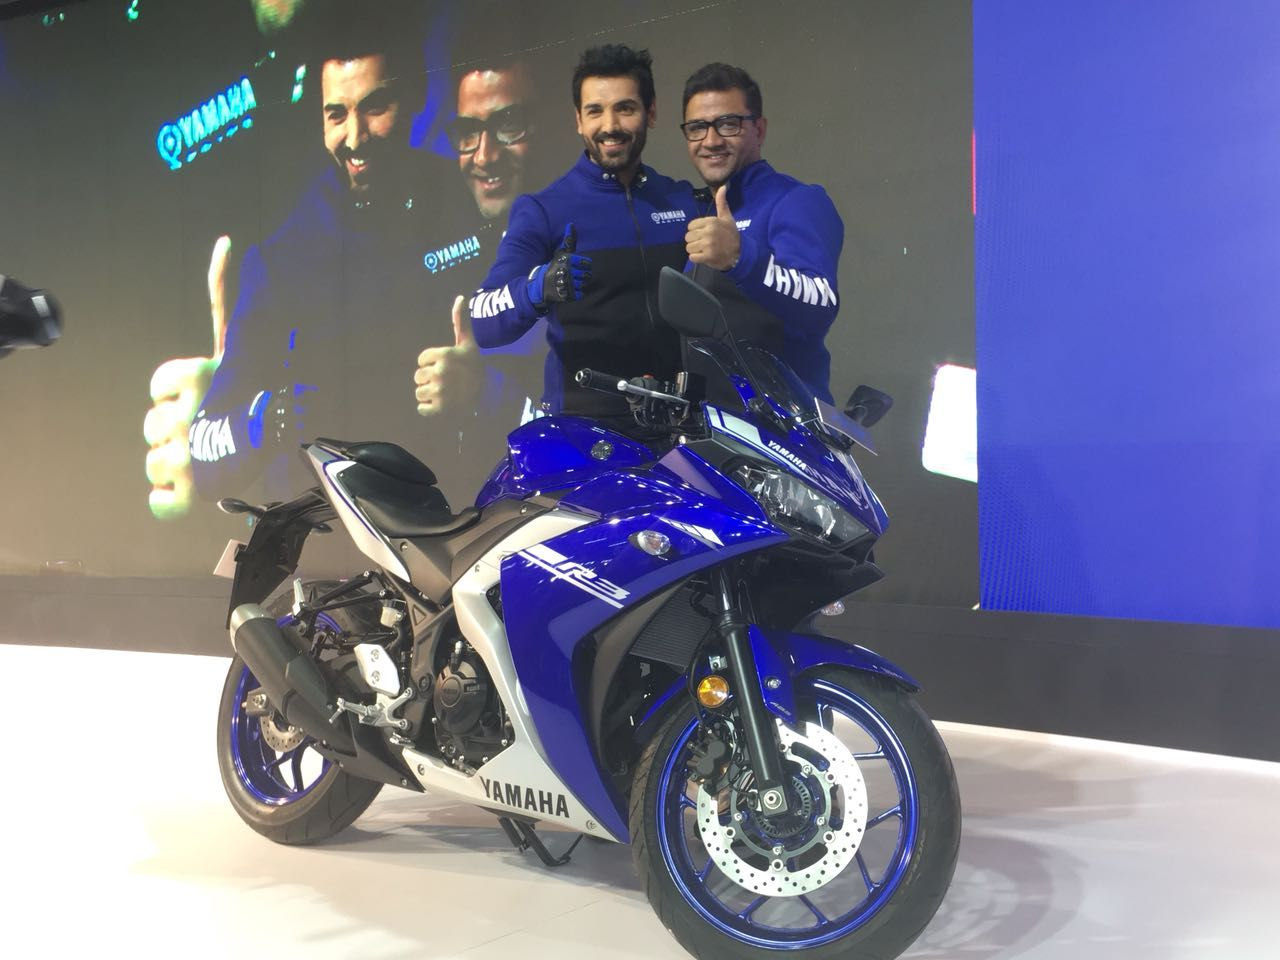 John Abraham's 'Dhoom' act at Auto Expo